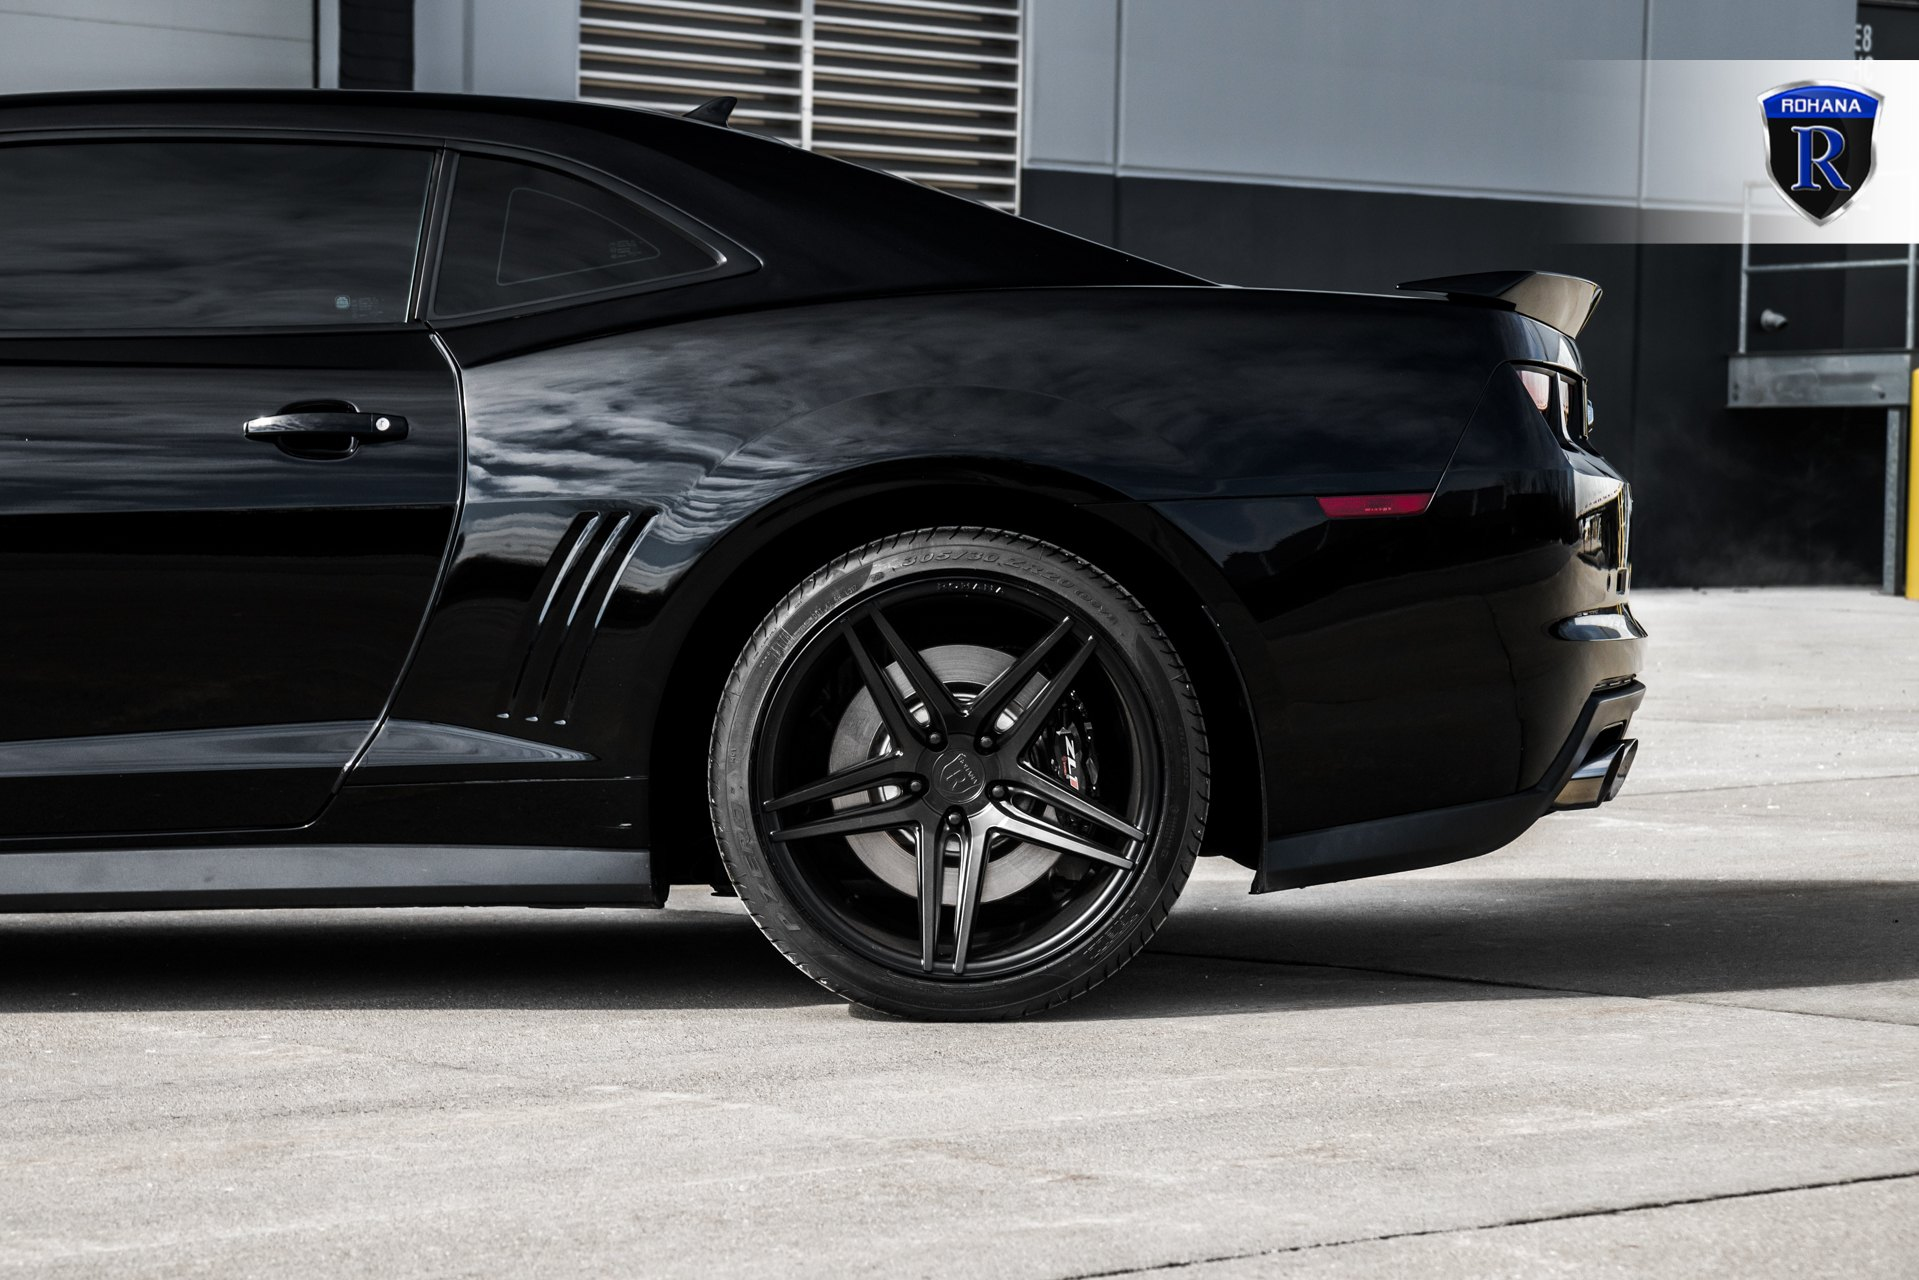 Pirelli Tires on Black Chevy Camaro ZL1 - Photo by Rohana Wheels